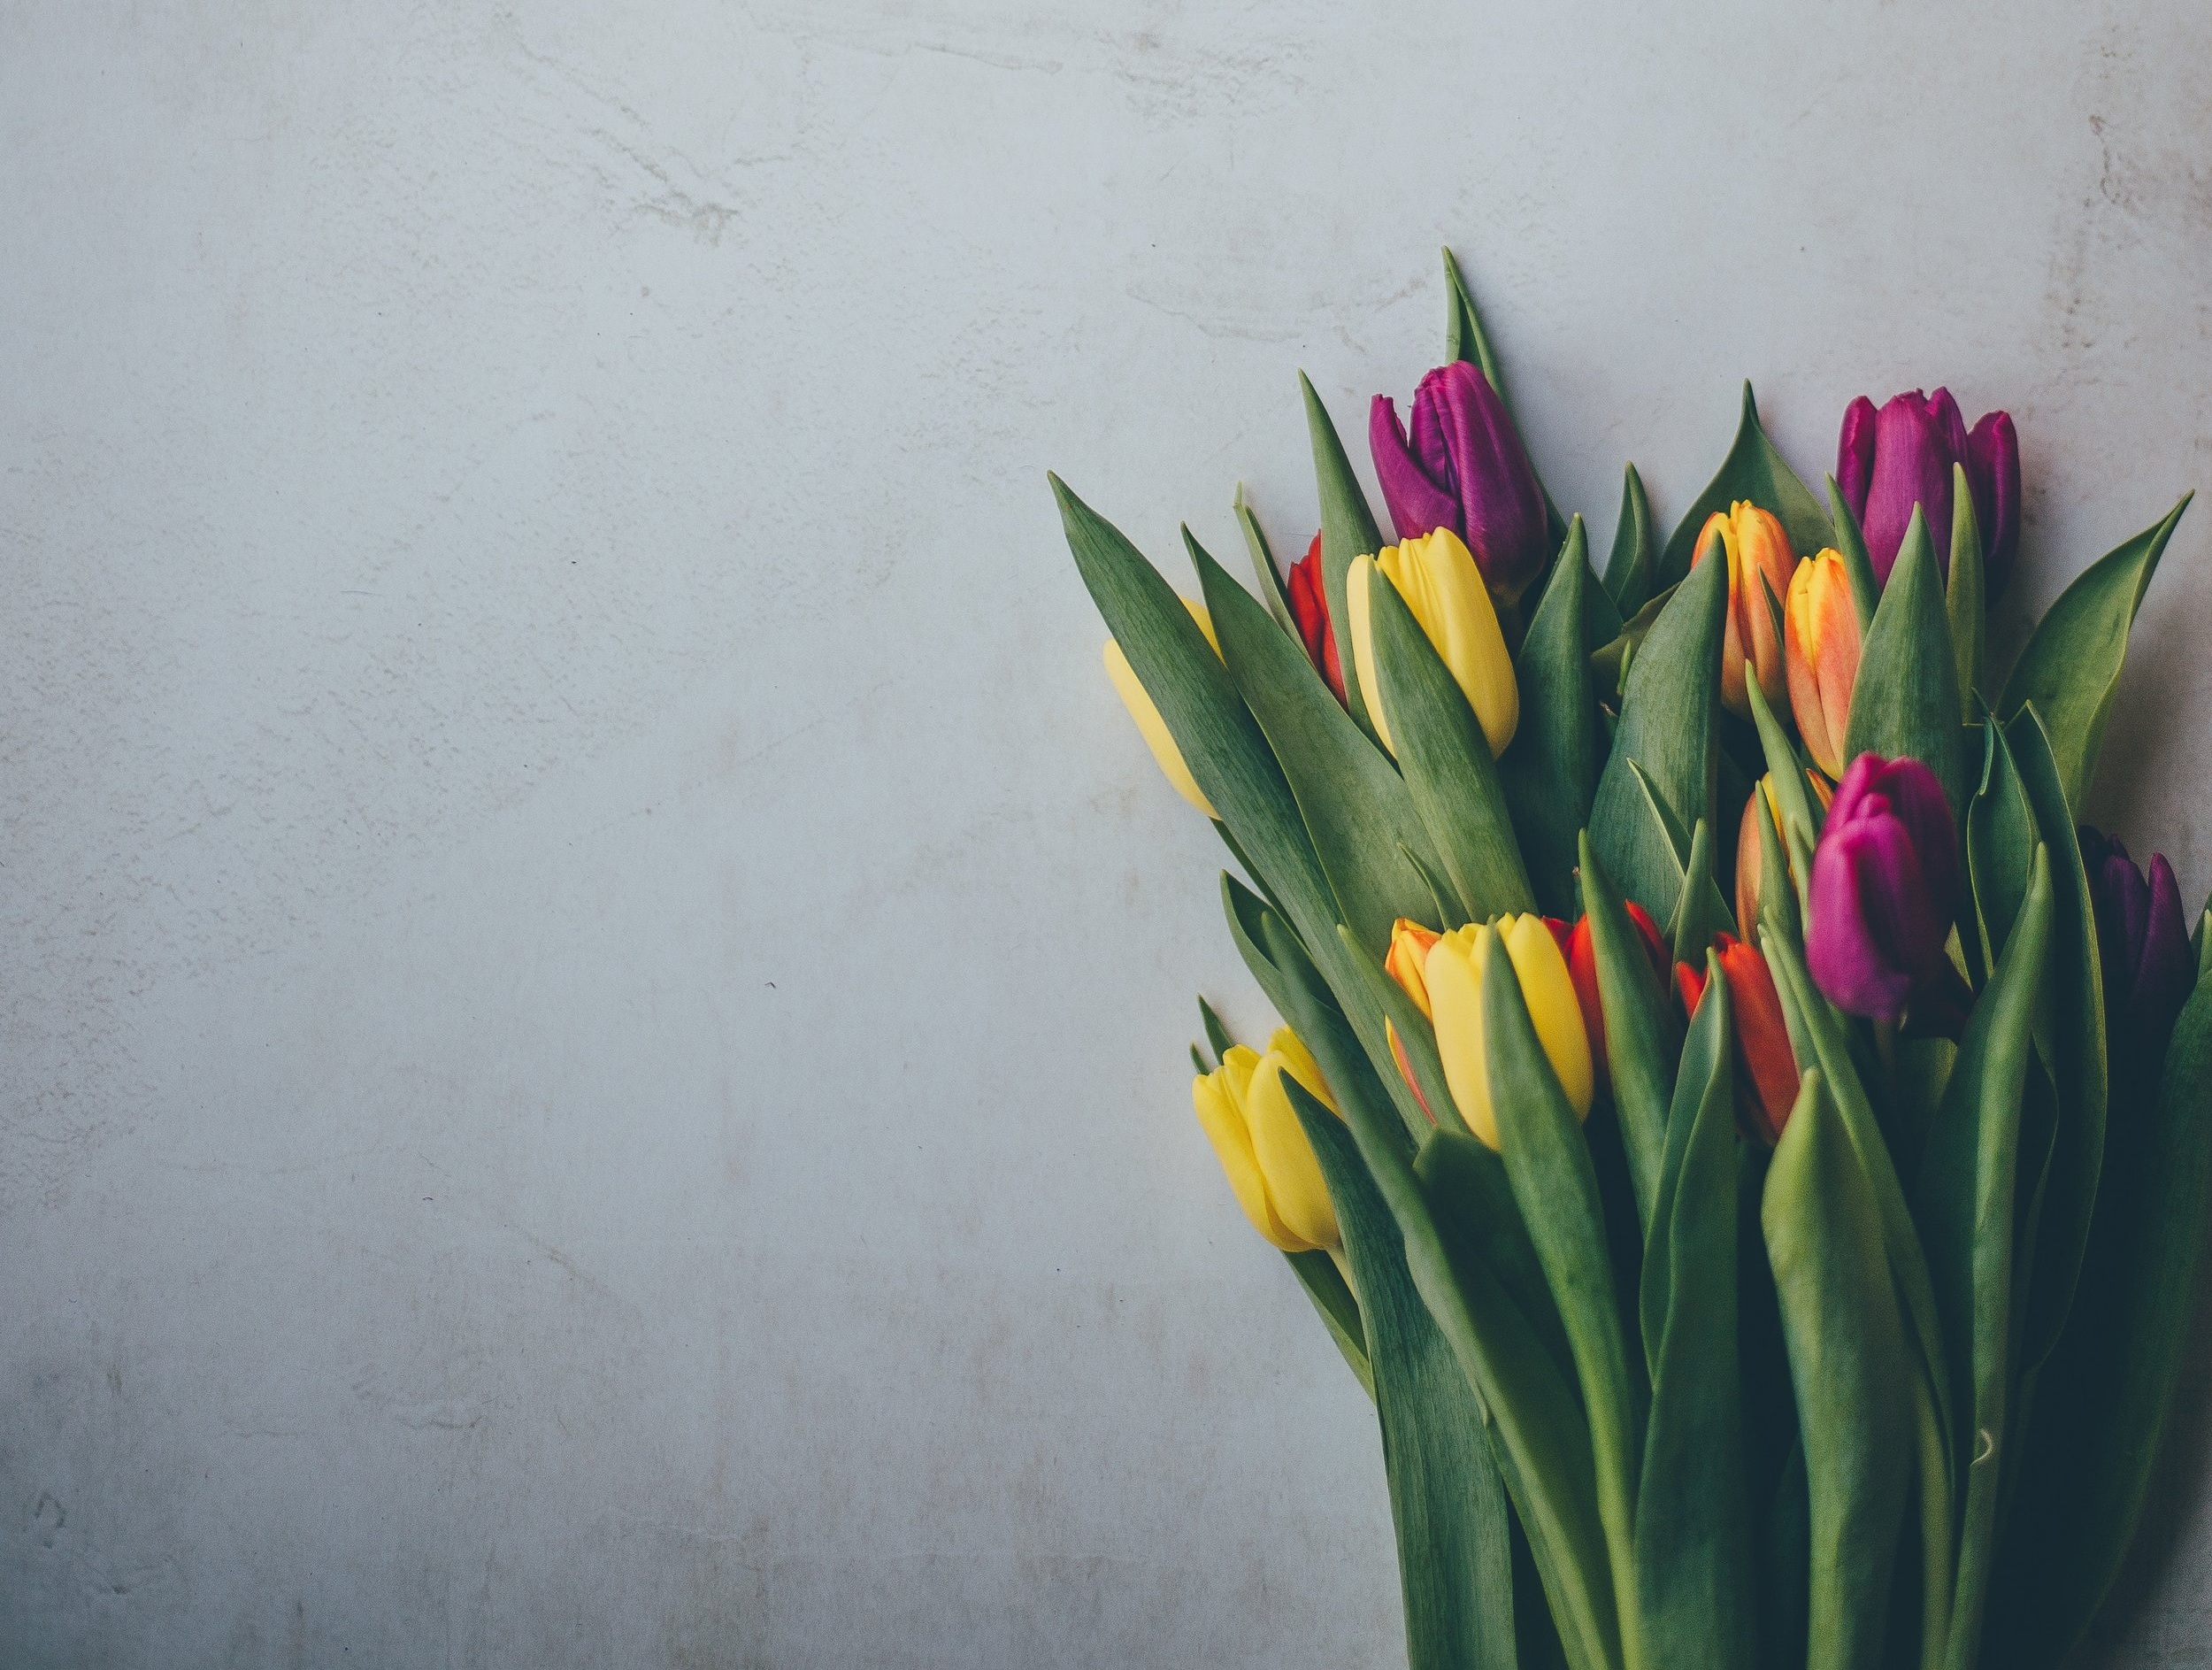 Pink+and+yellow+tulips+against+a+plain+wall